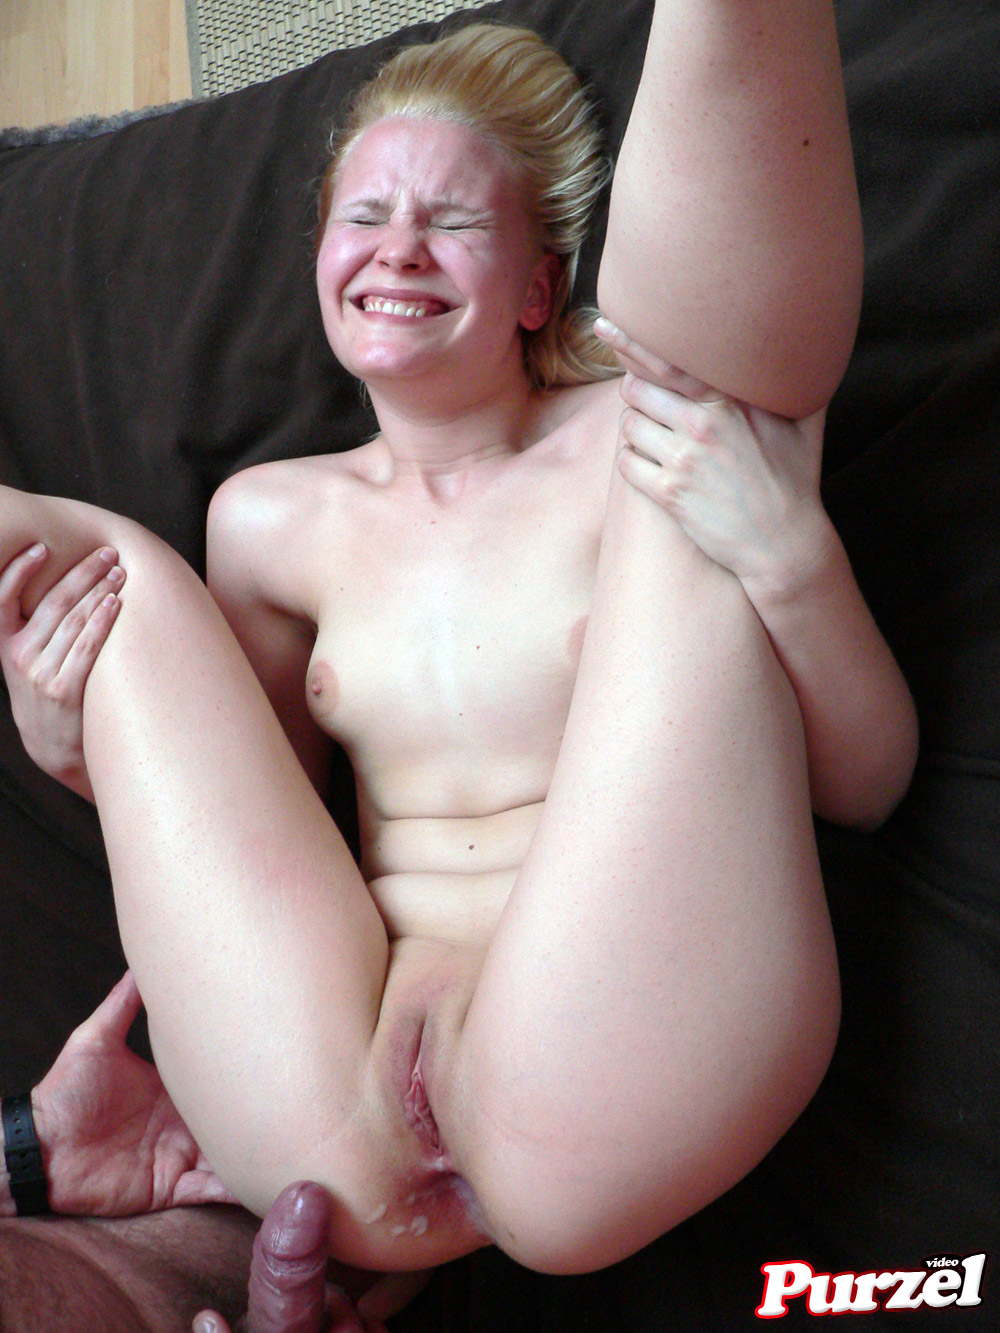 German girl first anal